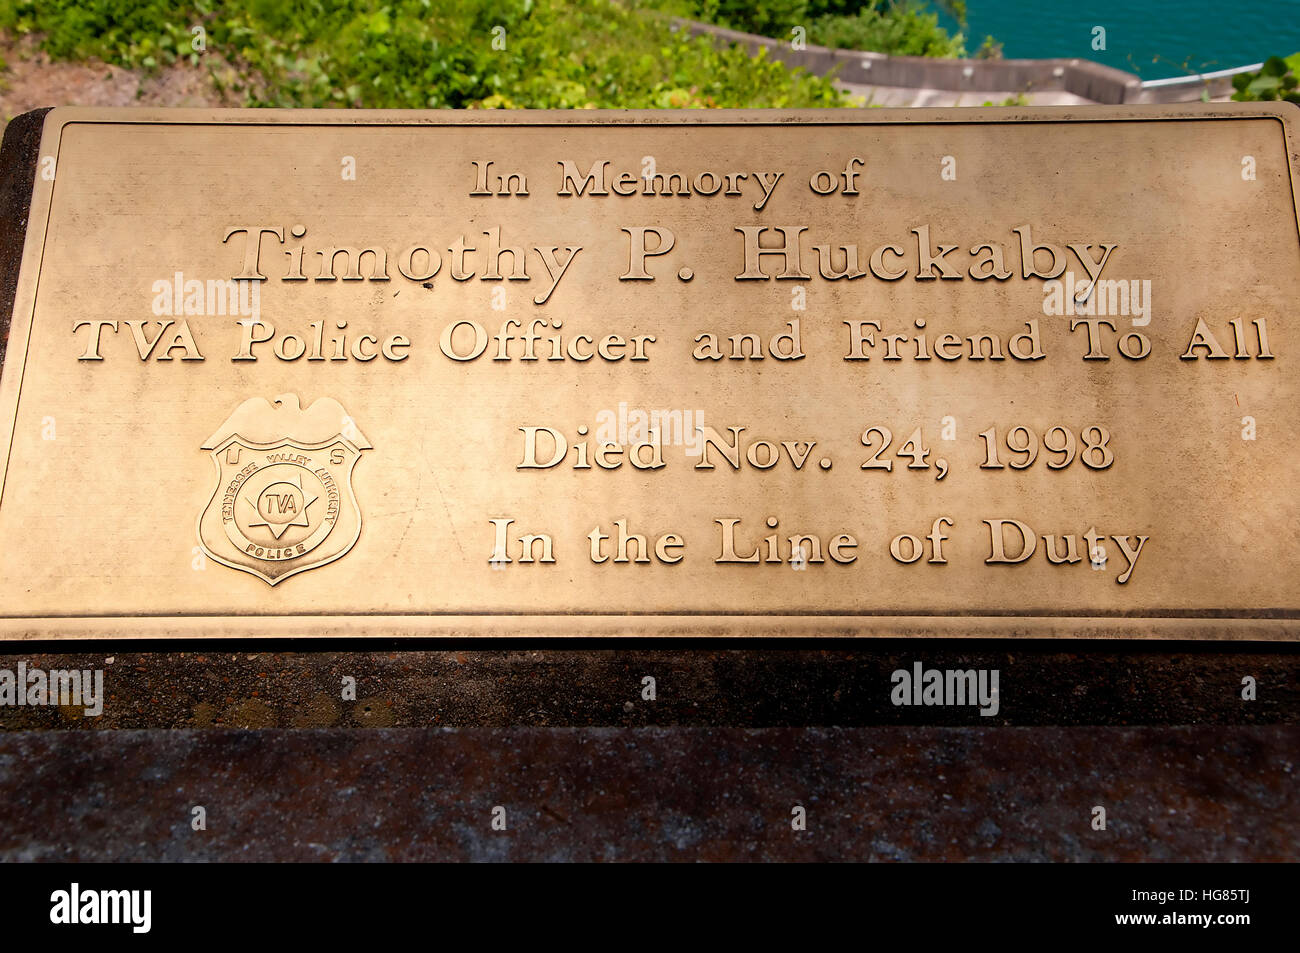 Gatlinburg is a mountain resort city in Sevier County, Tennessee, United States. Memorial to a heroic policeman - Stock Image